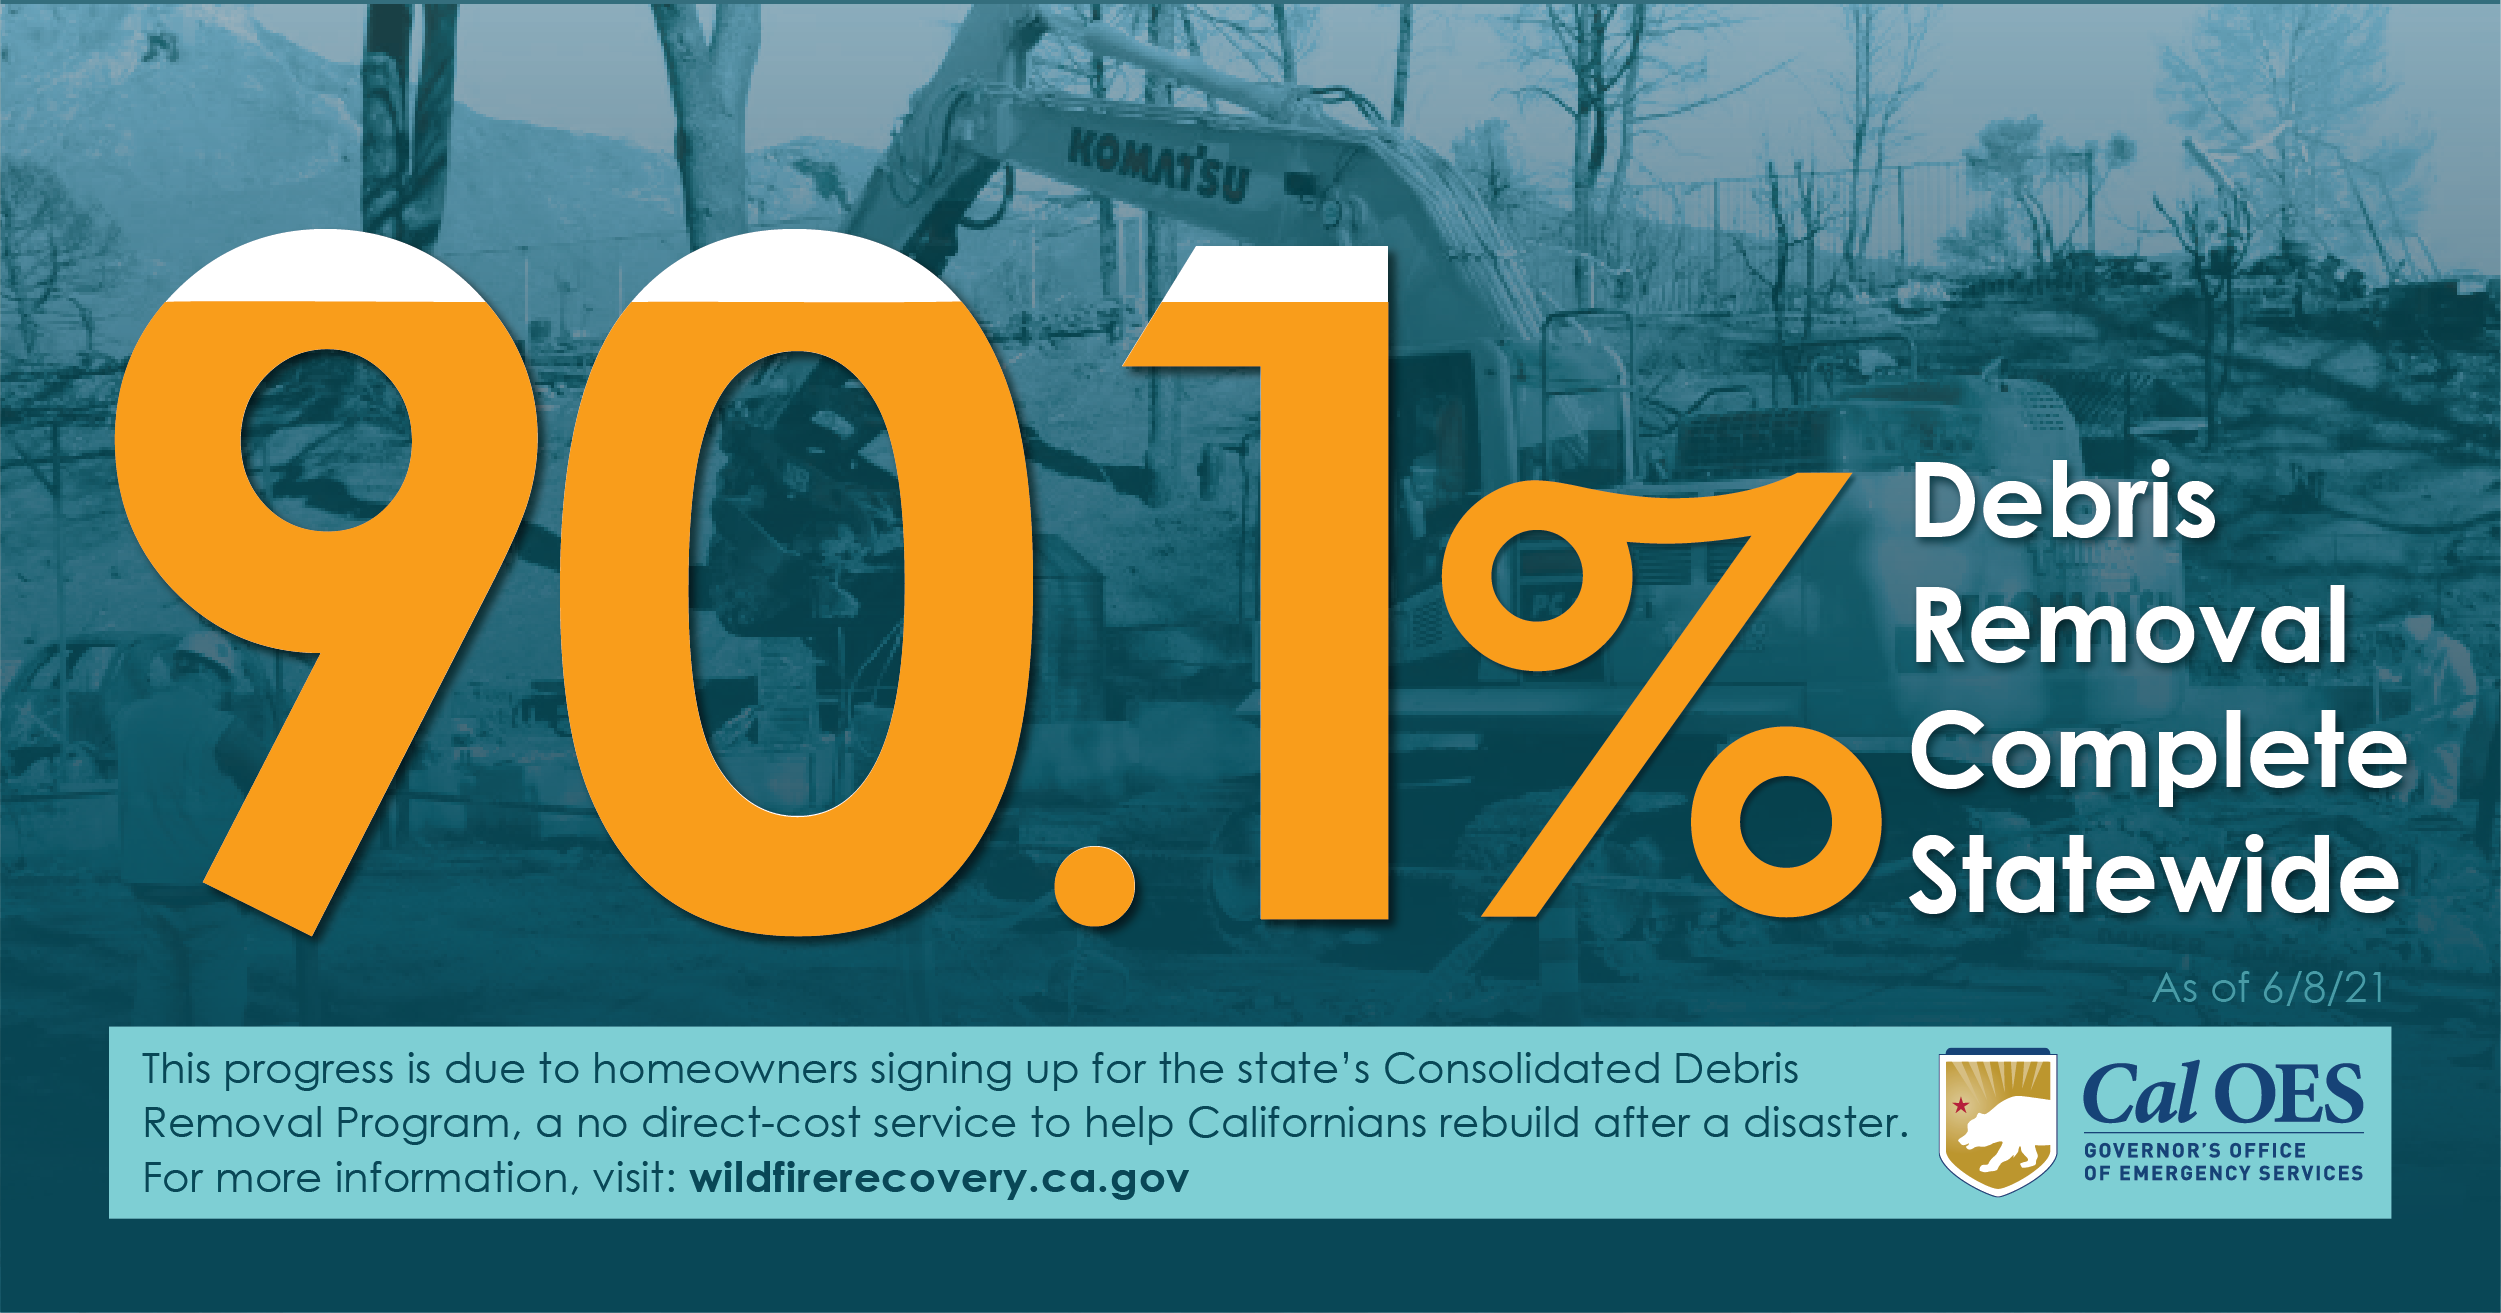 Clearing the Way for Recovery: Statewide Debris Removal Reaches 90% Completion